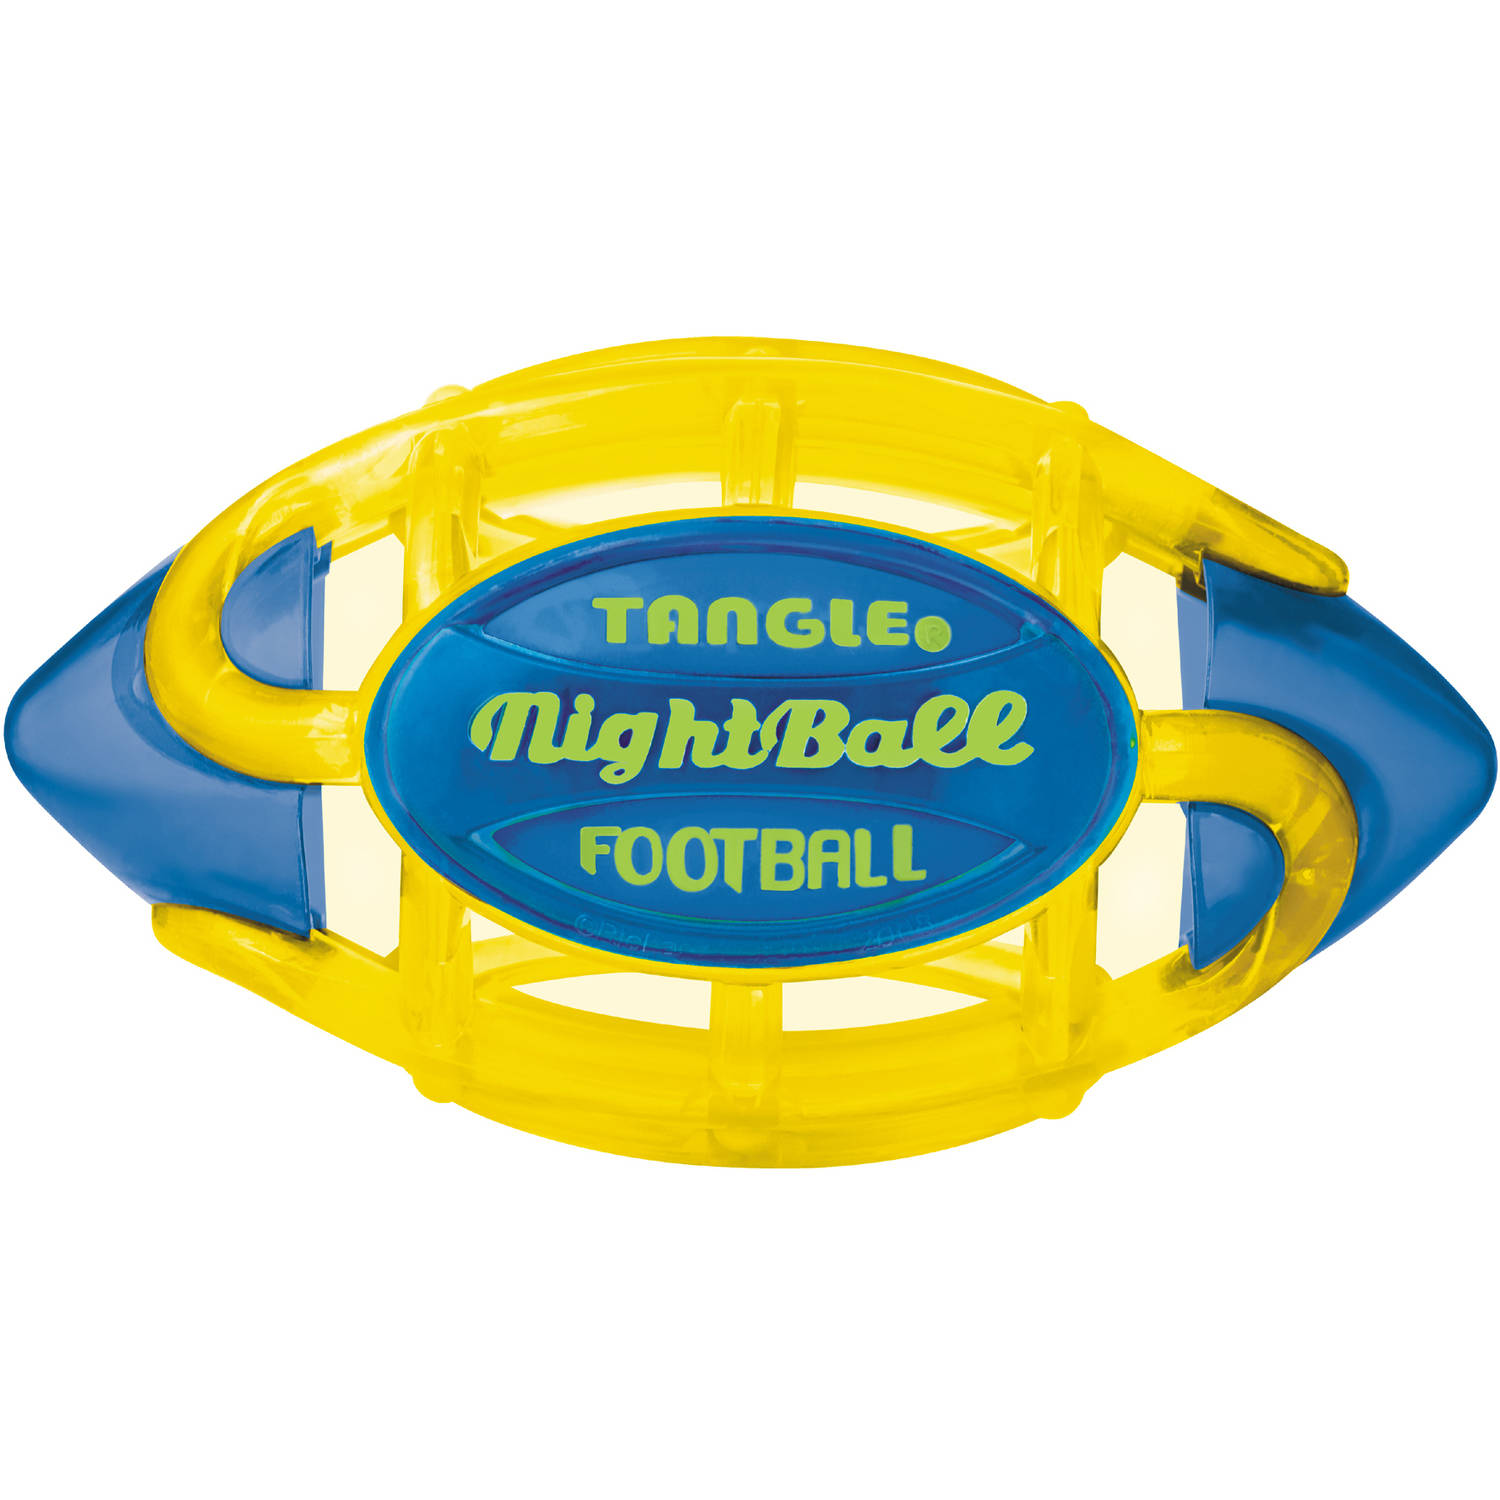 Tangle NightBall Football, Large, Yellow Body Blue Tips by Tangle Creations